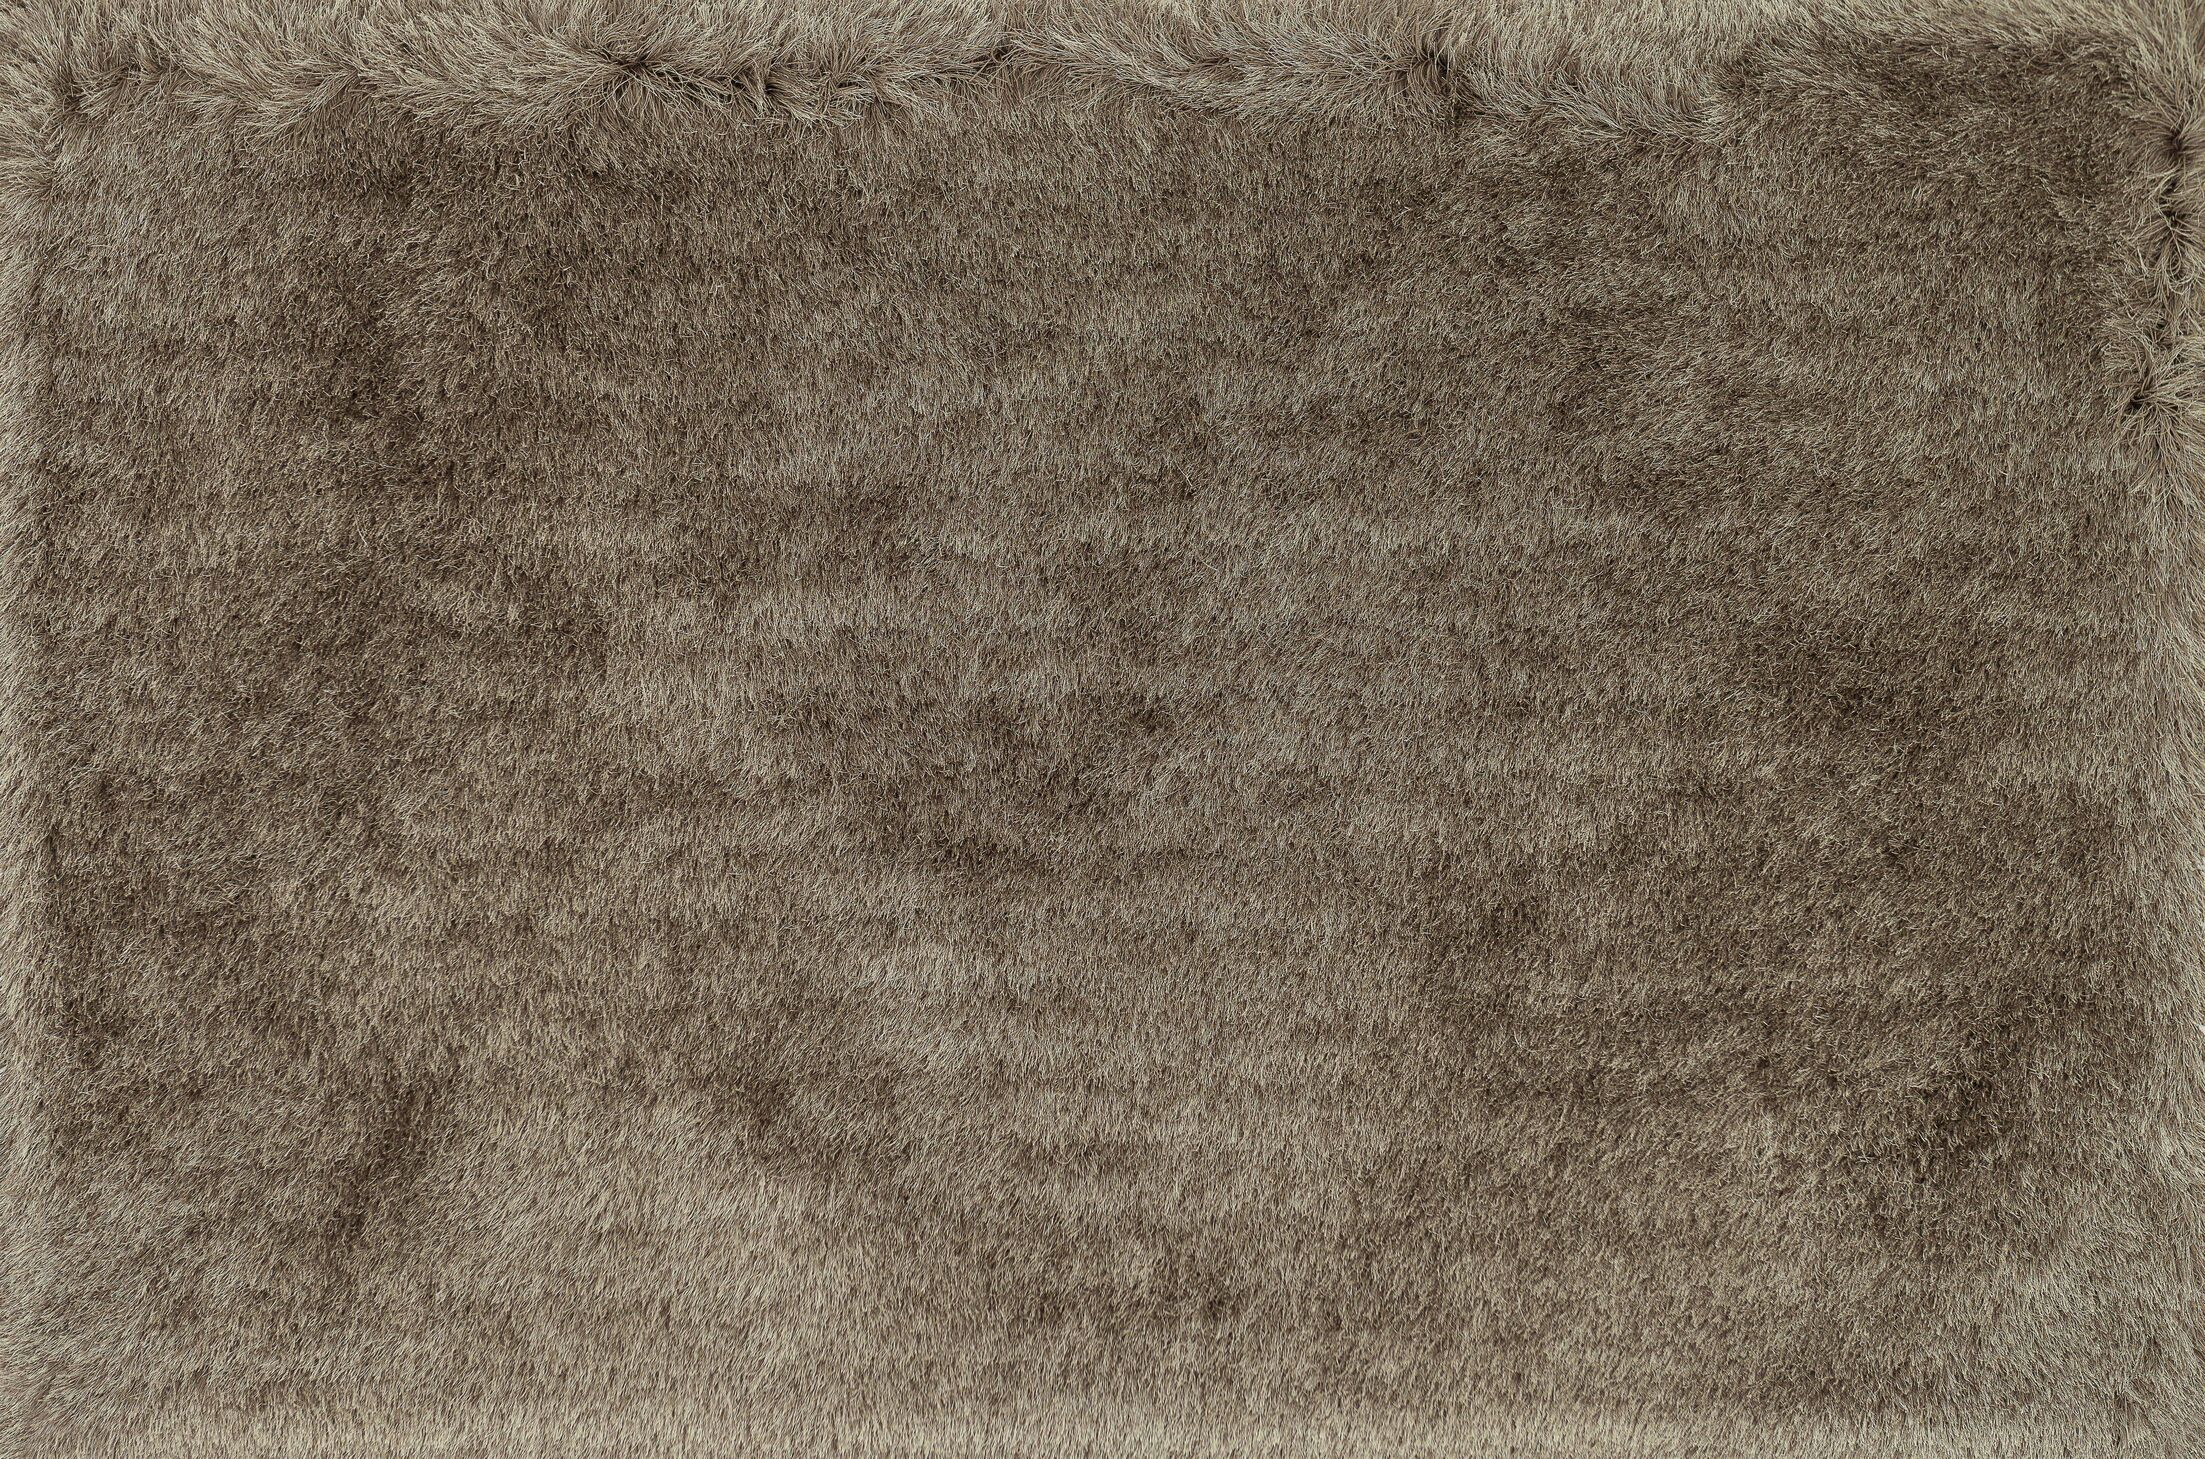 Hersi Hand-Tufted Taupe Area Rug Rug Size: Rectangle 3'6